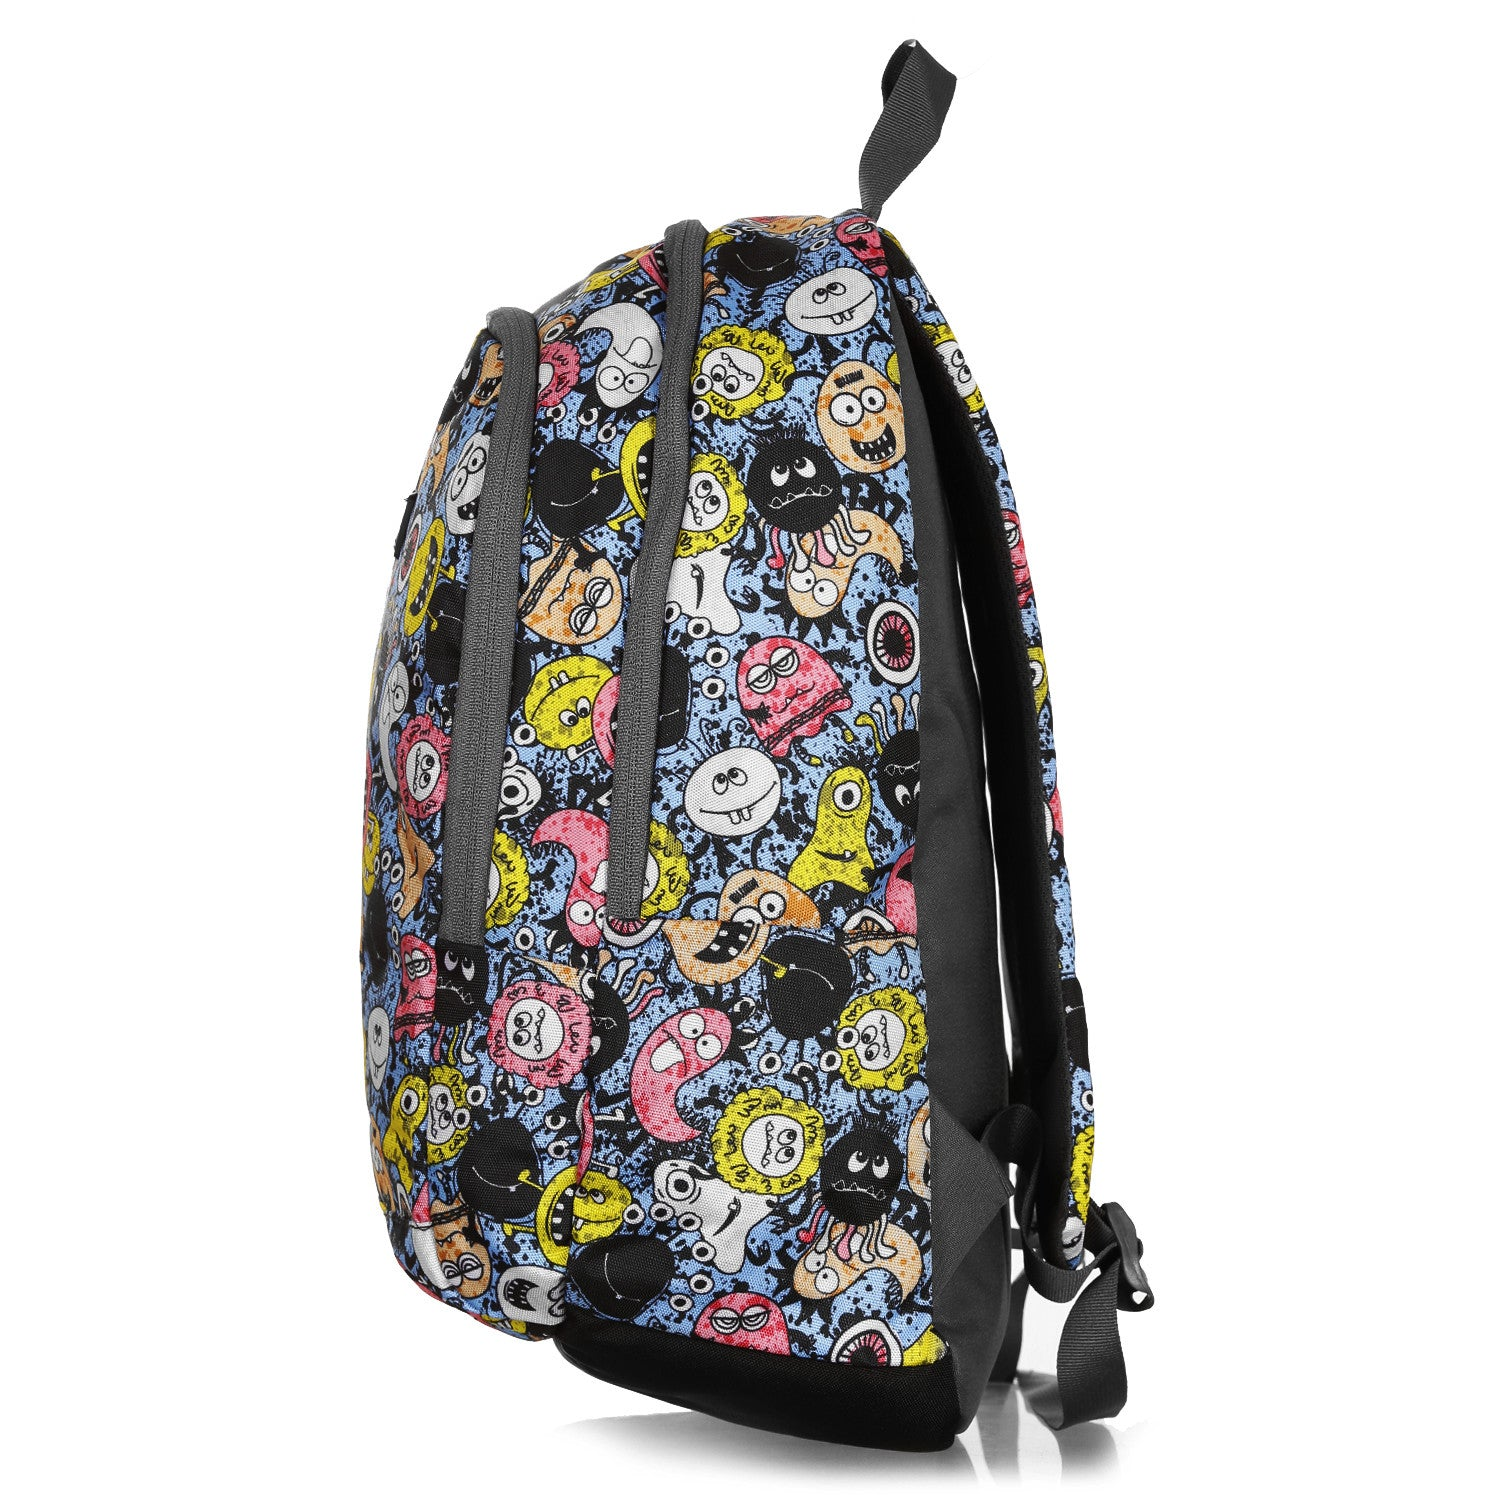 F Gear Castle Smiley Blue Black 22 L Polyester Backpack (3351)